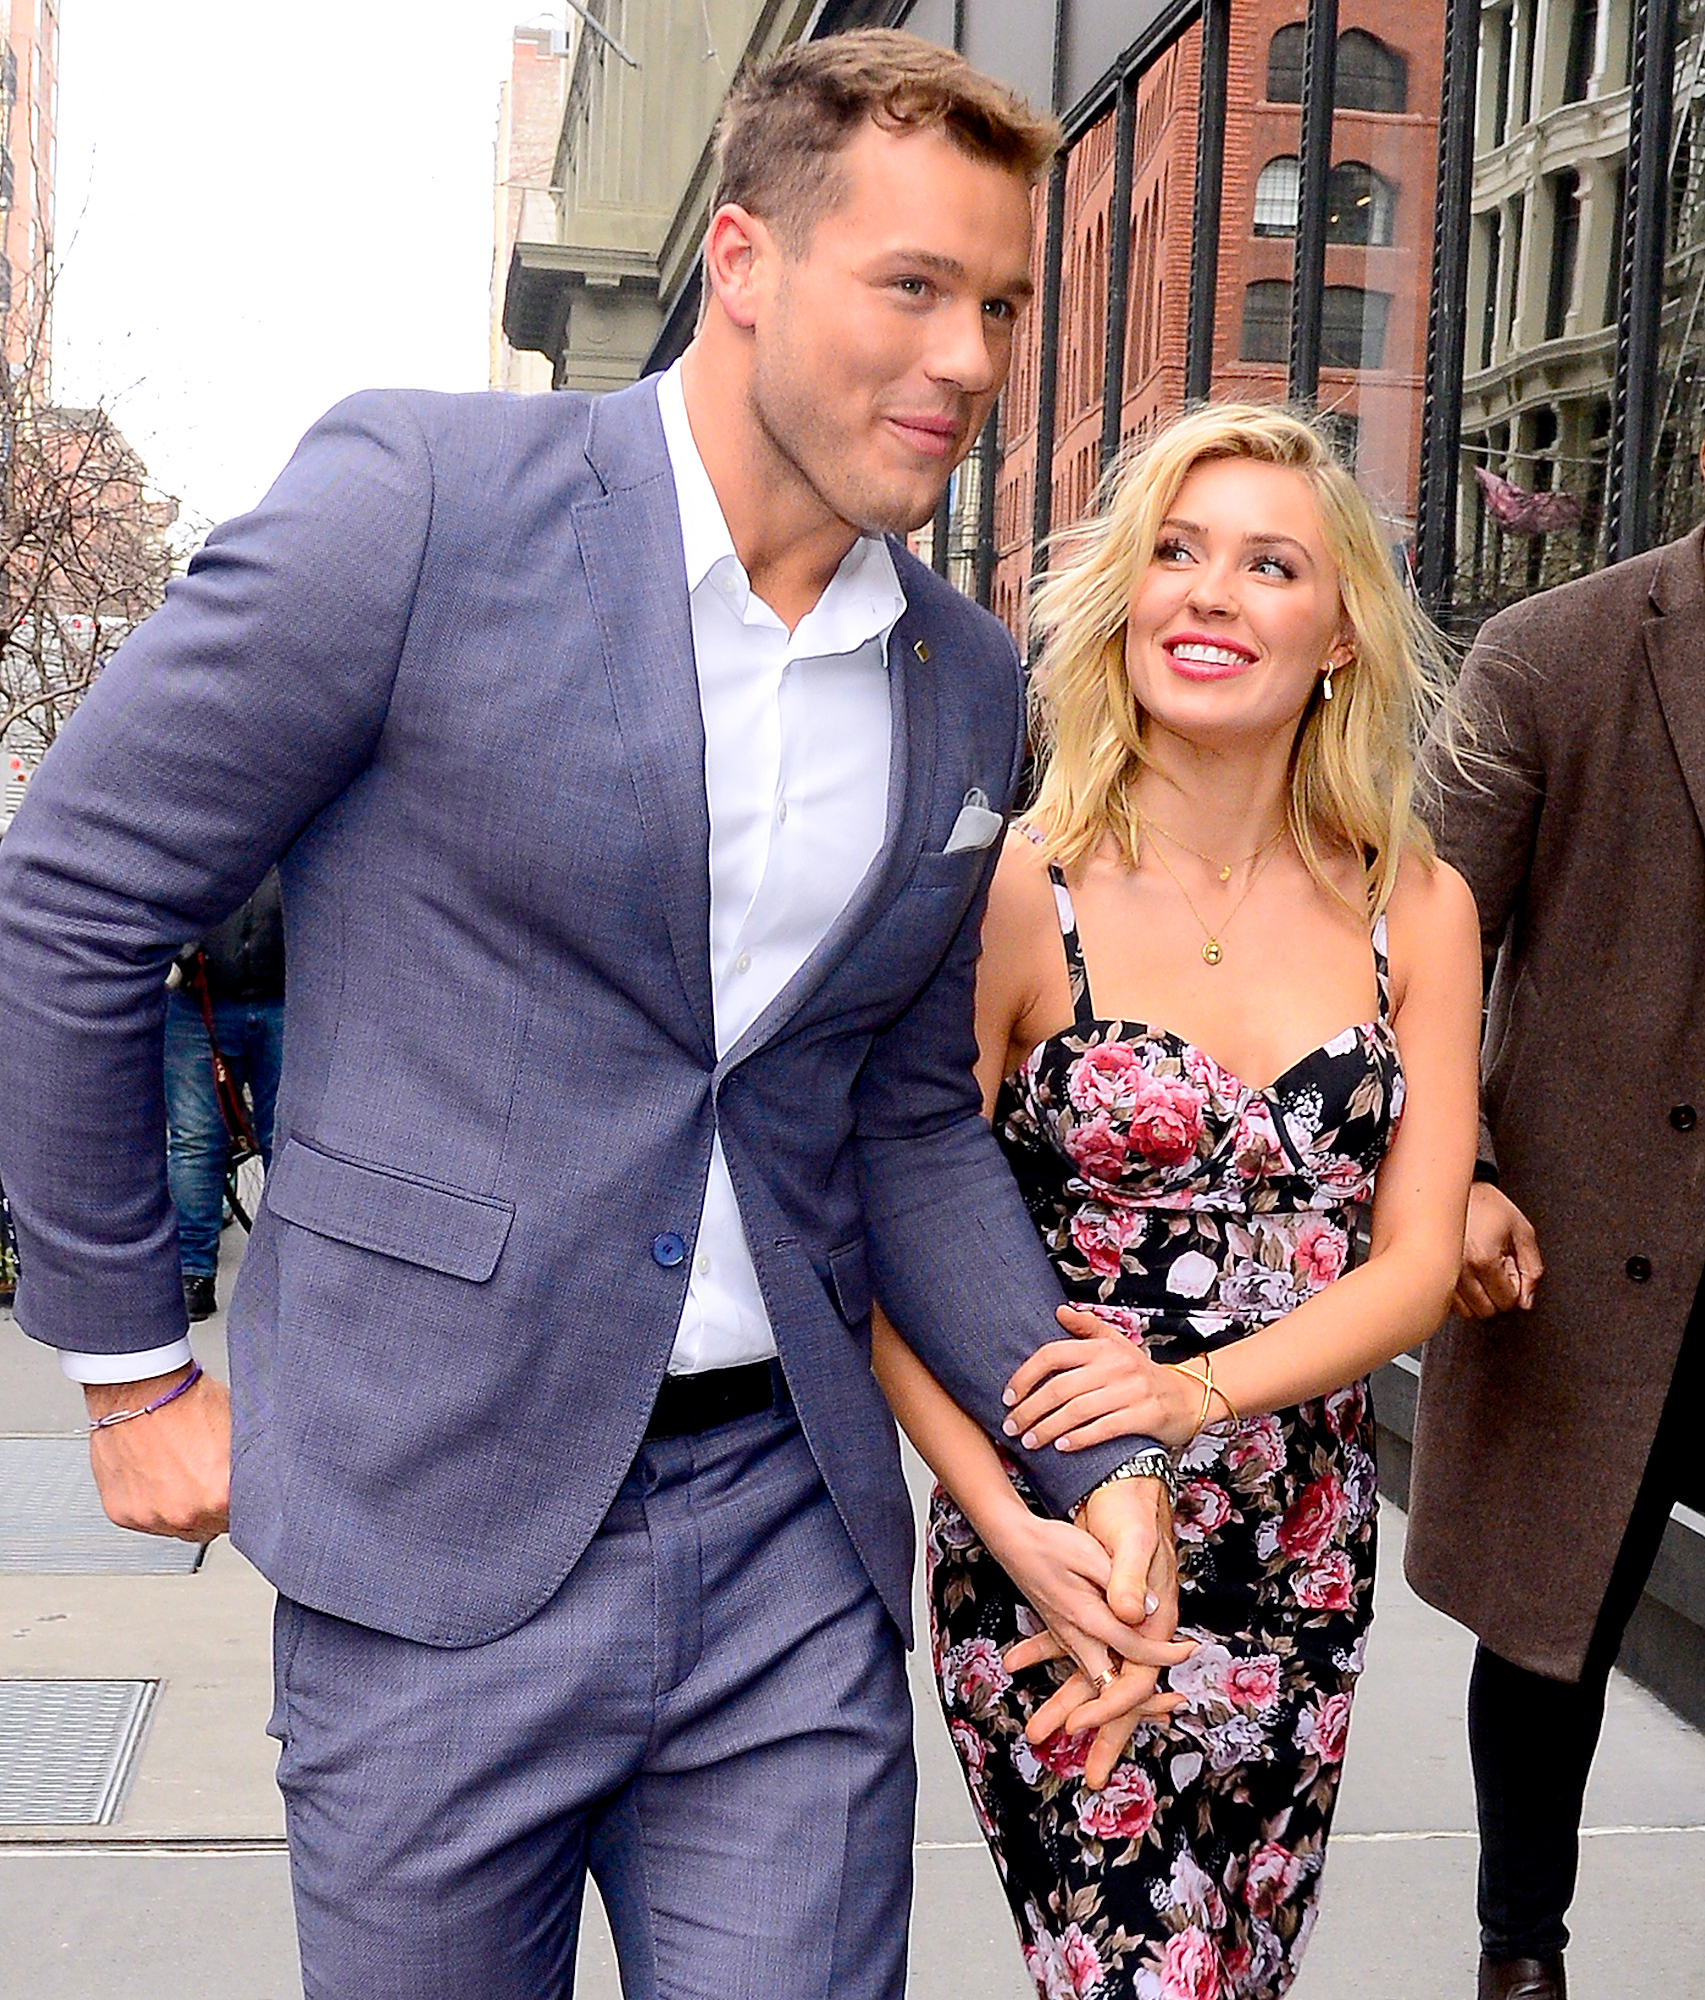 Colton-Underwood-and-Cassie-Randolph-moving